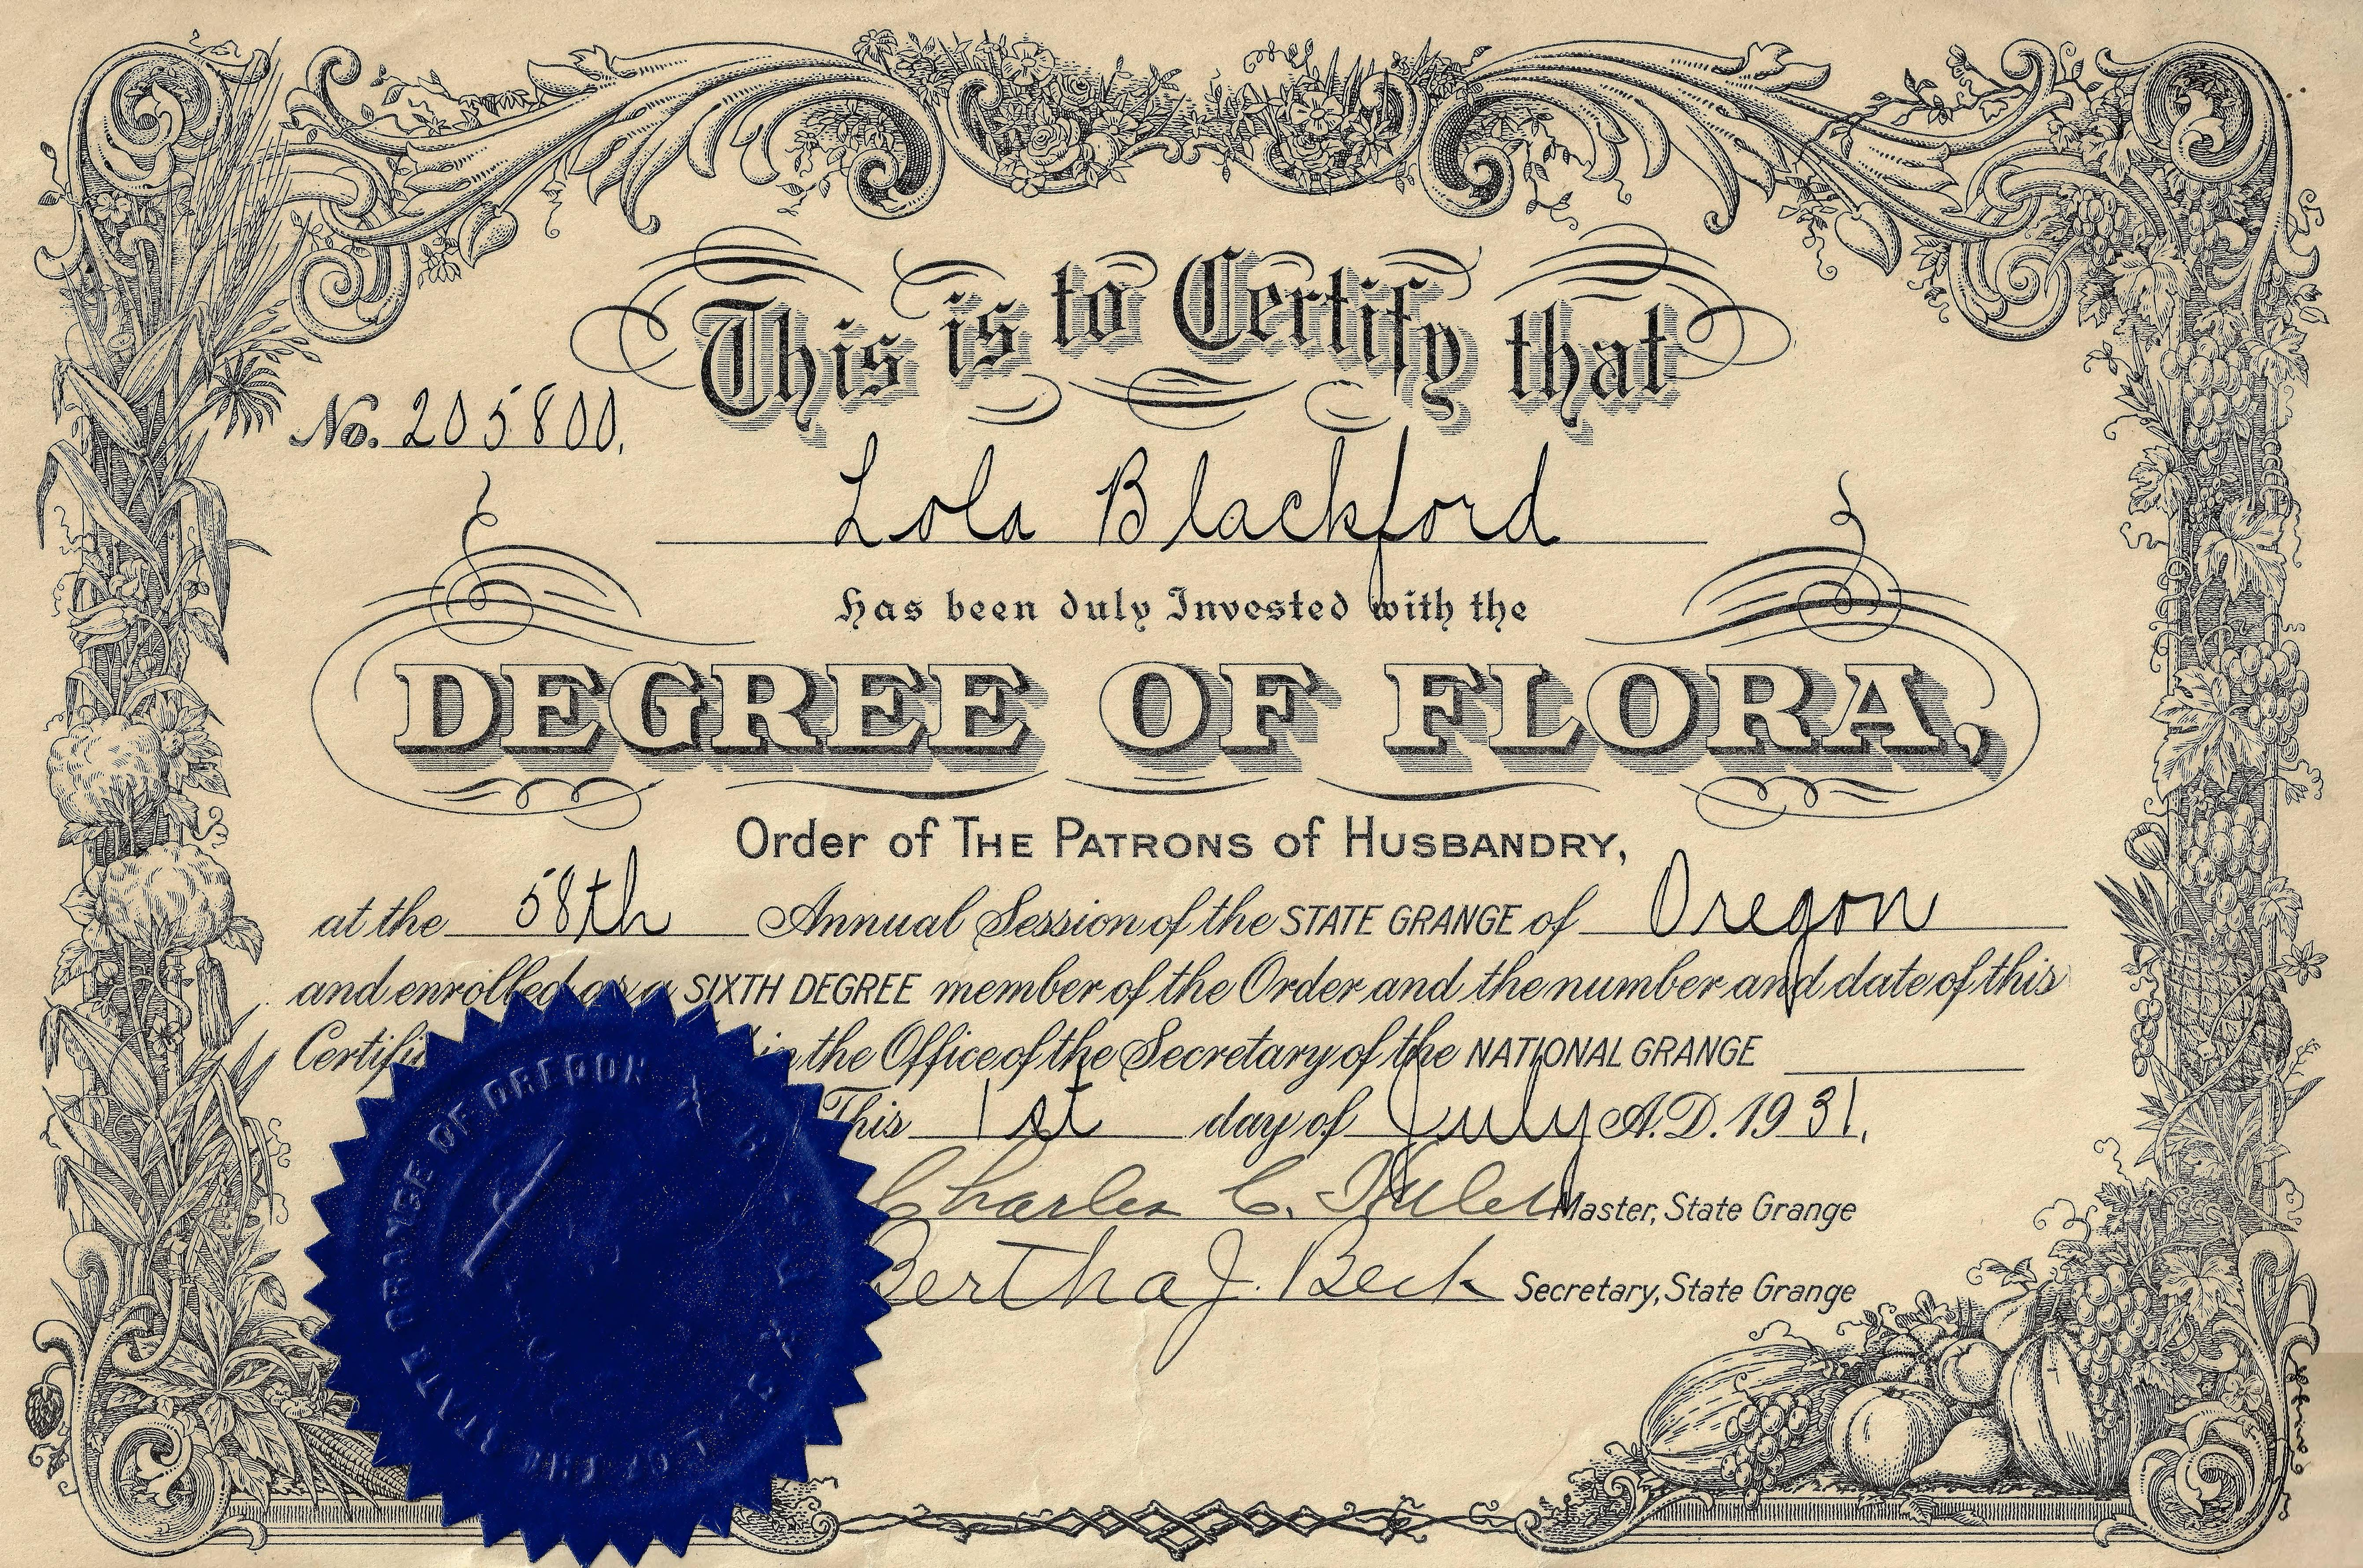 Southern Oregon Digital Archives / Blackford Family Collection<br>Lola Blackford's certificate for the Sixth Degree of Flora in the Order of the Patrons of Husbandry, awarded at the 58th annual session of the state grange of Oregon in 1931.